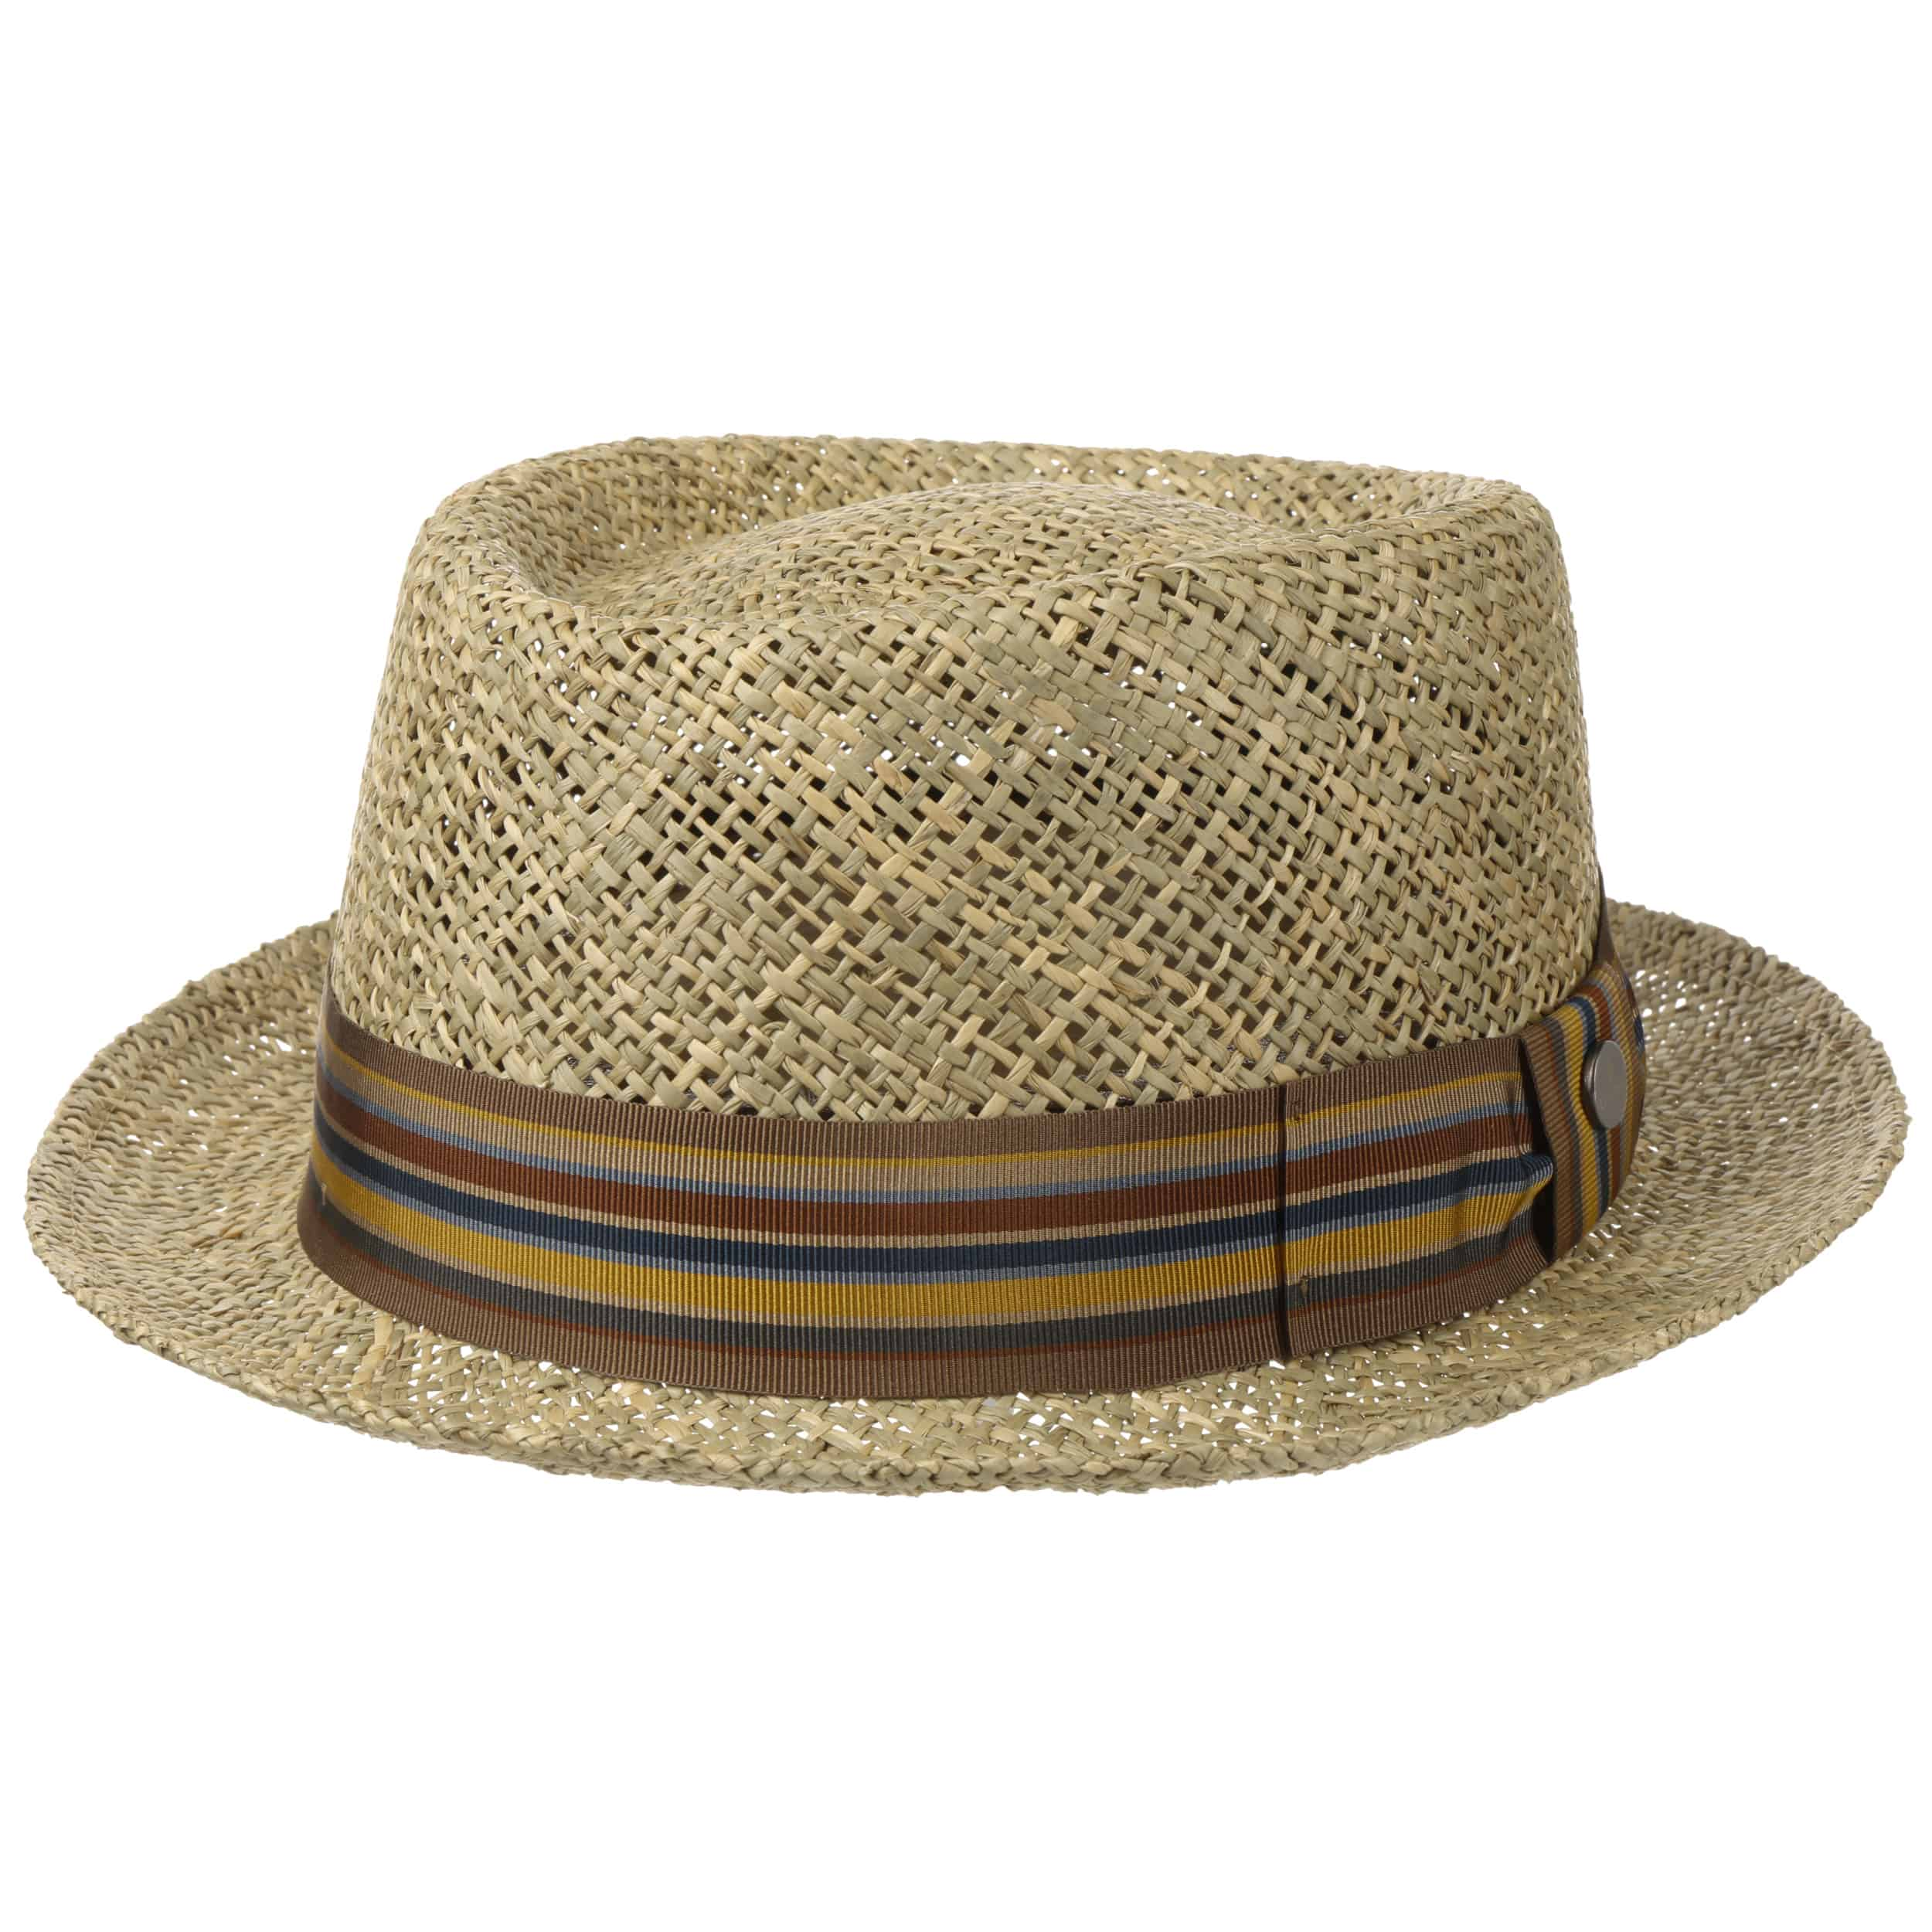 Summer Hat with Leather Band Sizes M-L Made in Italy Lipodo Coyuca Vented Pork Pie Straw Hat Sun Hat Men and Women Hat Made of 100/% Straw